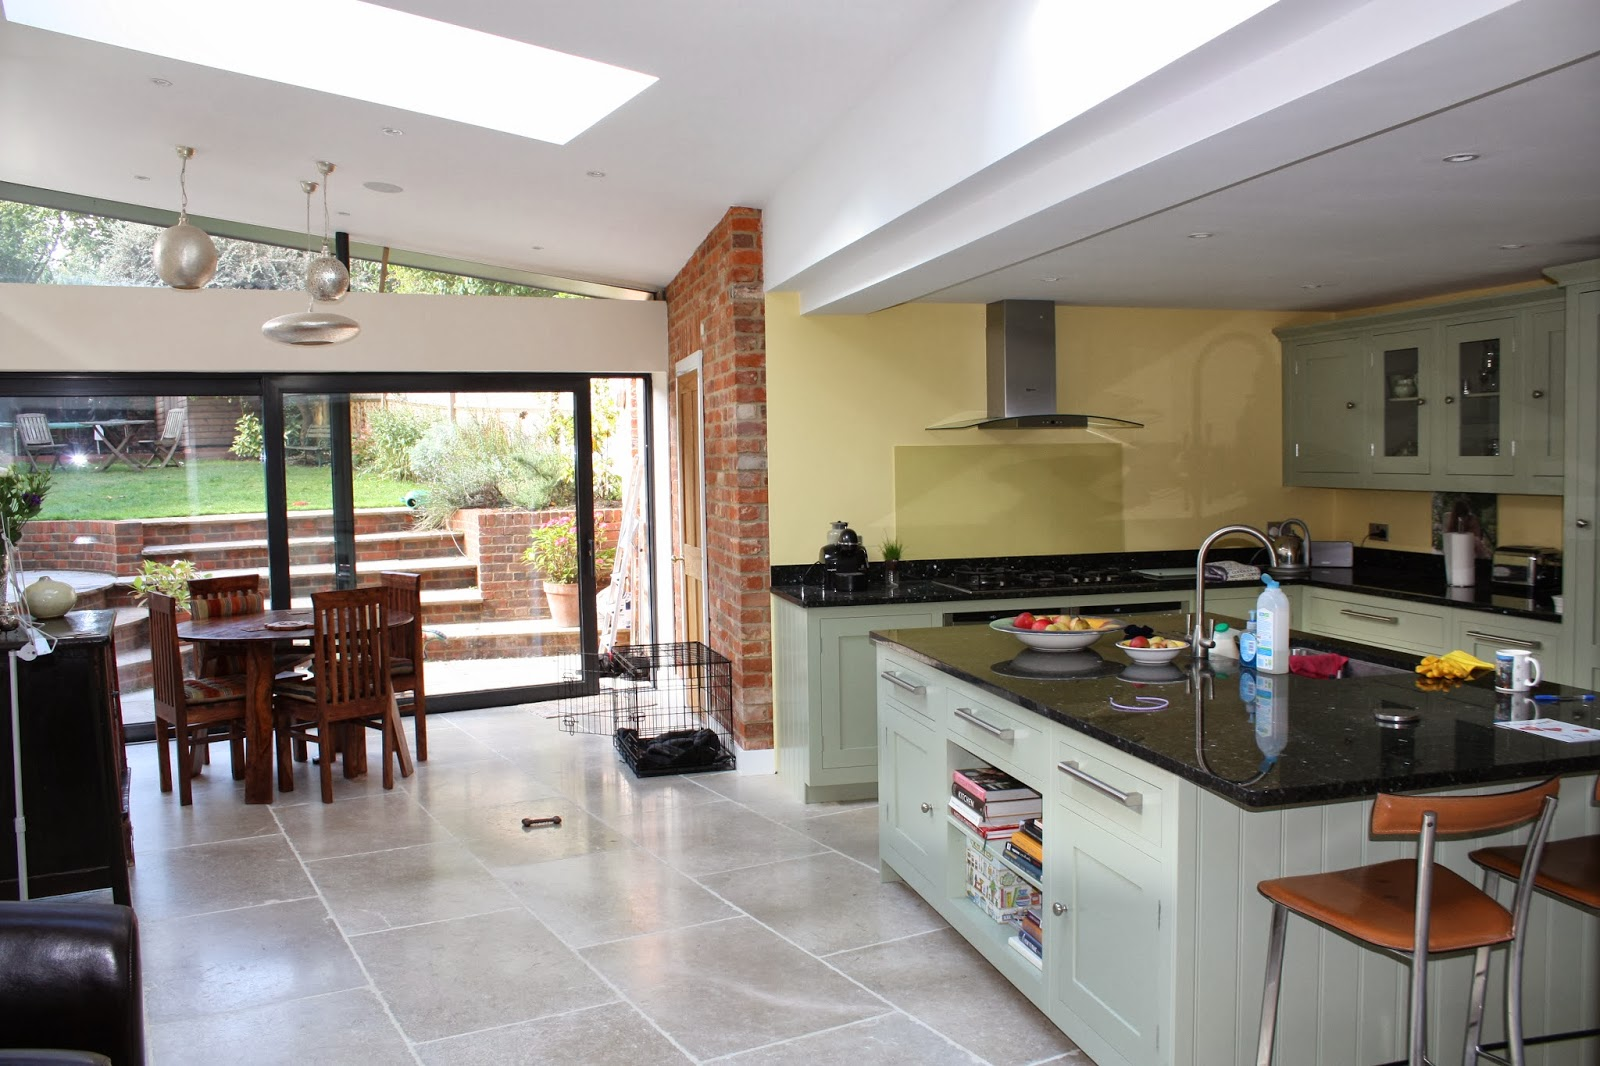 Decor in kitchen extension